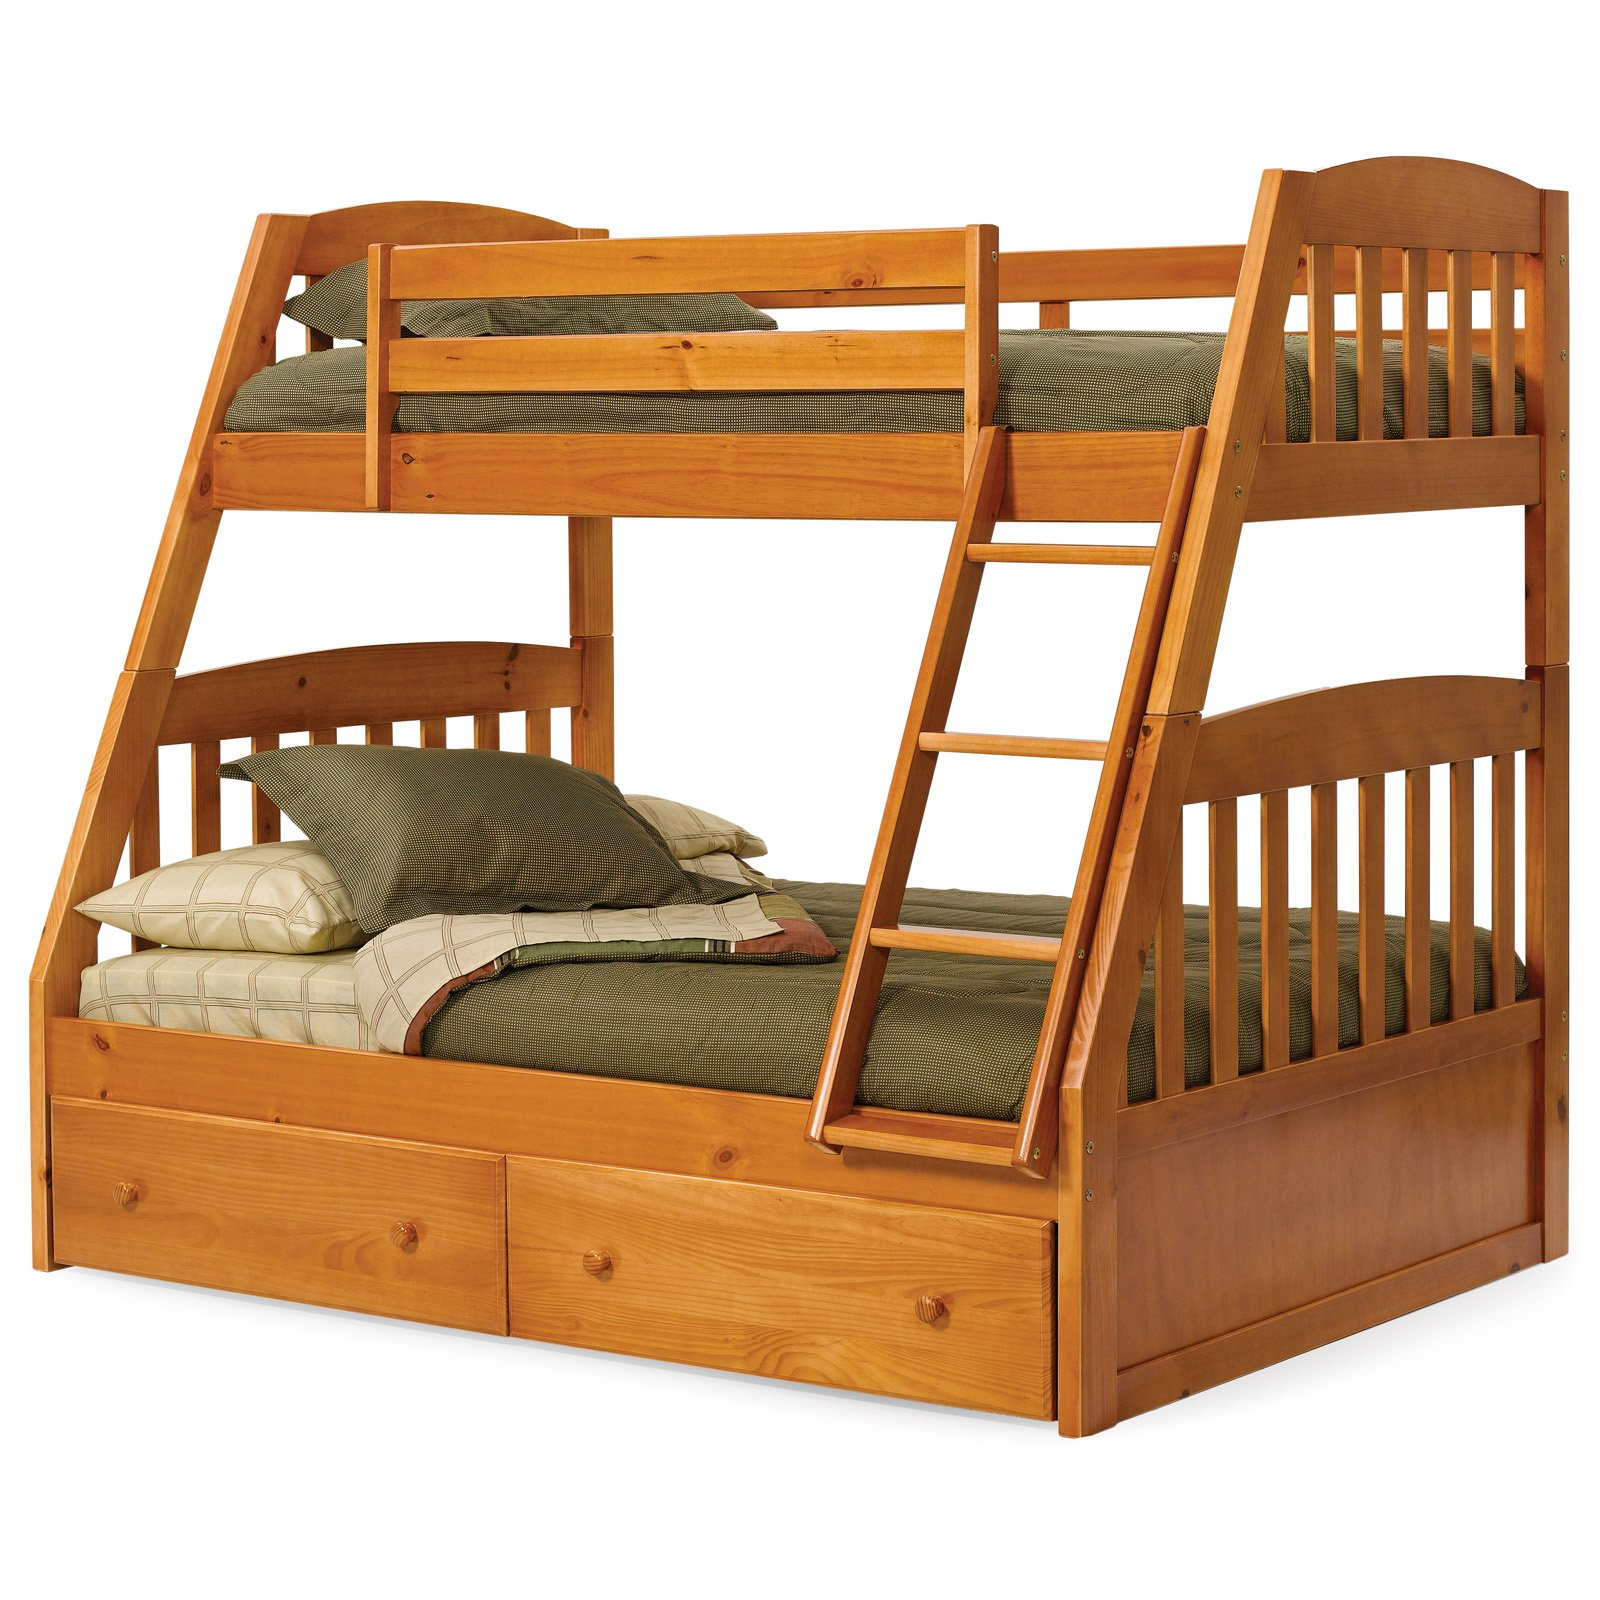 Home Bedroom Furniture Kids Twin And Full Bunk Bed With Storage Drawers Buy Twin And Full Bunk Bed With Storage Solid Wood Twin Over Full Bunk Bed Kids Bunk Bed With Drawers Product